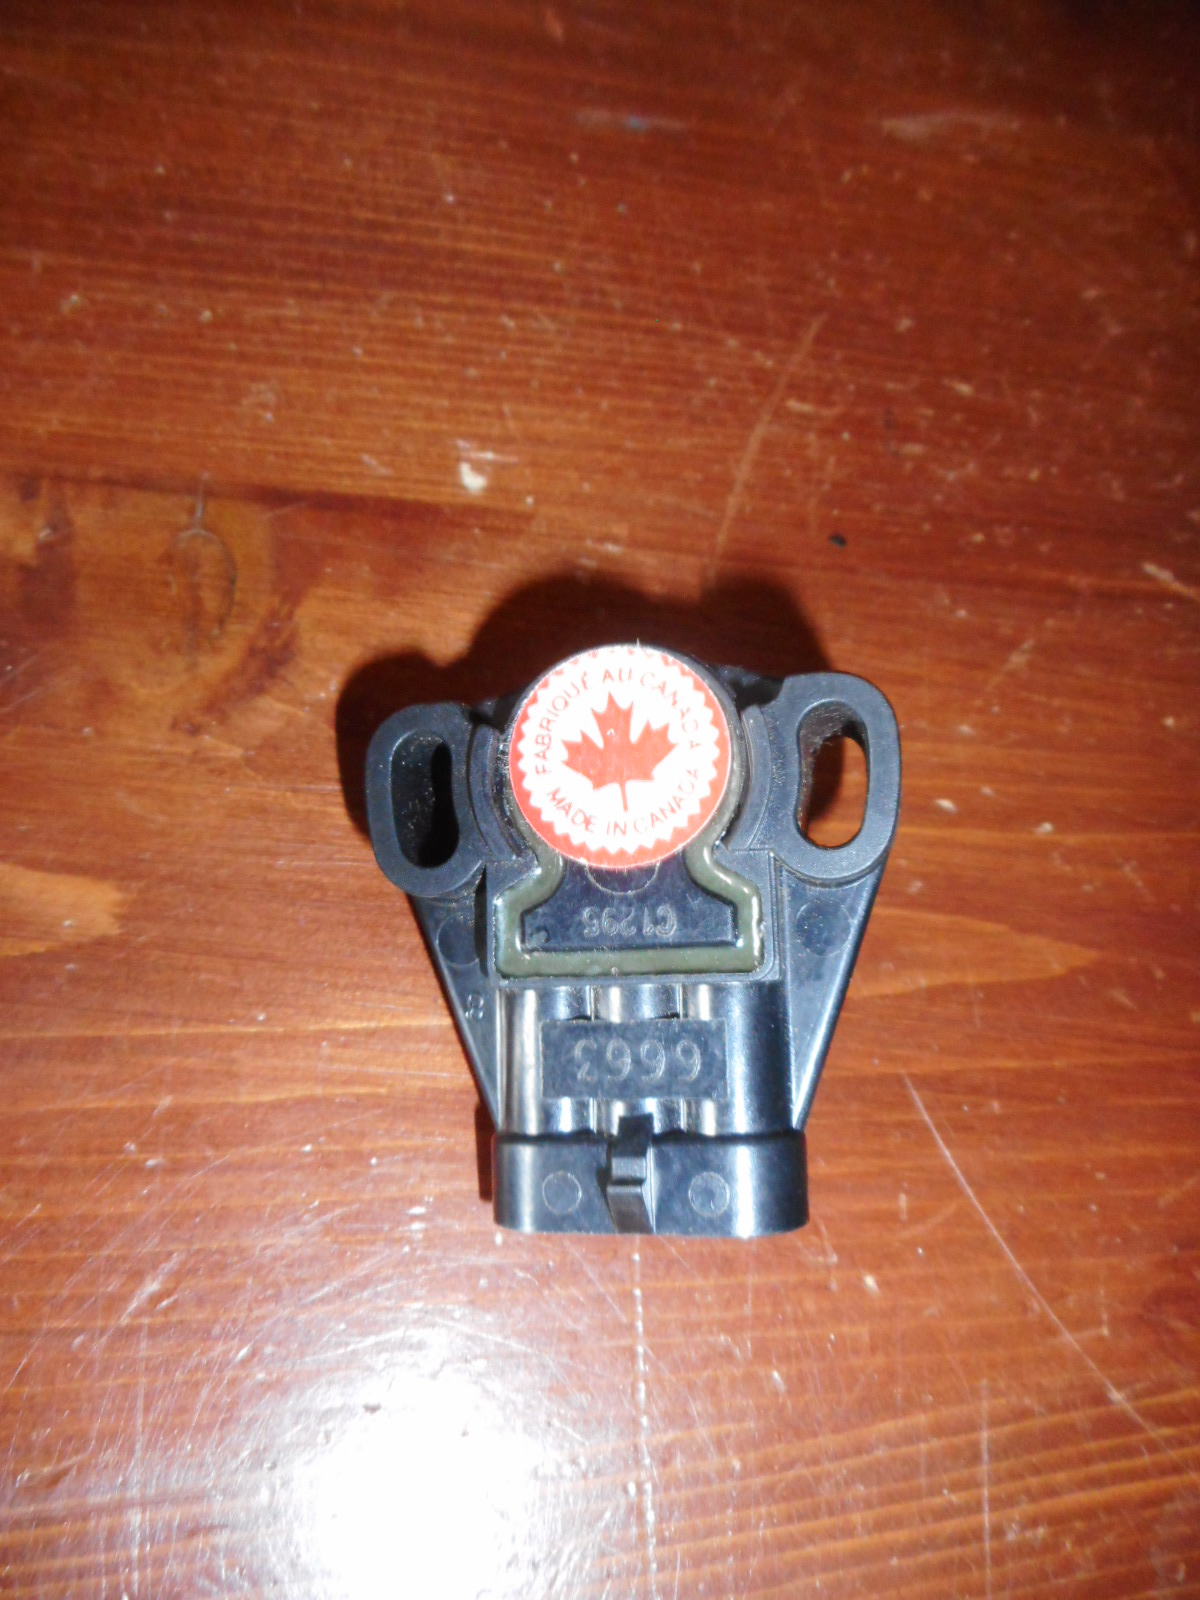 Throttle Position Sensors #2503663 4 sale-dscn1339.jpg